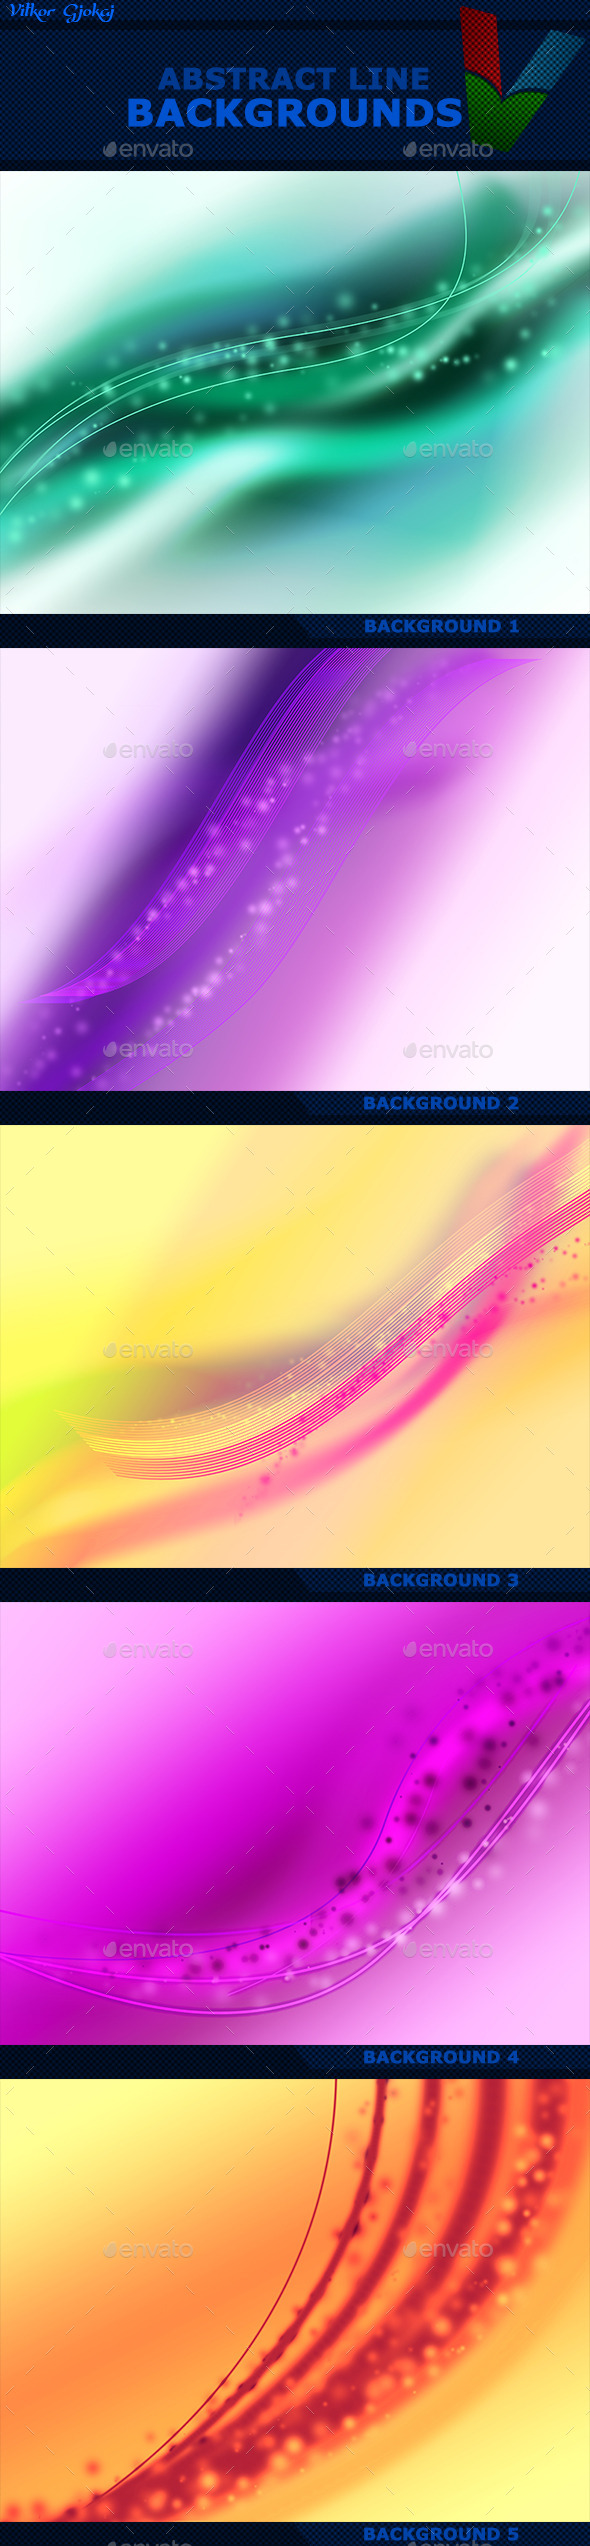 Abstract Line Backgrounds - Abstract Backgrounds